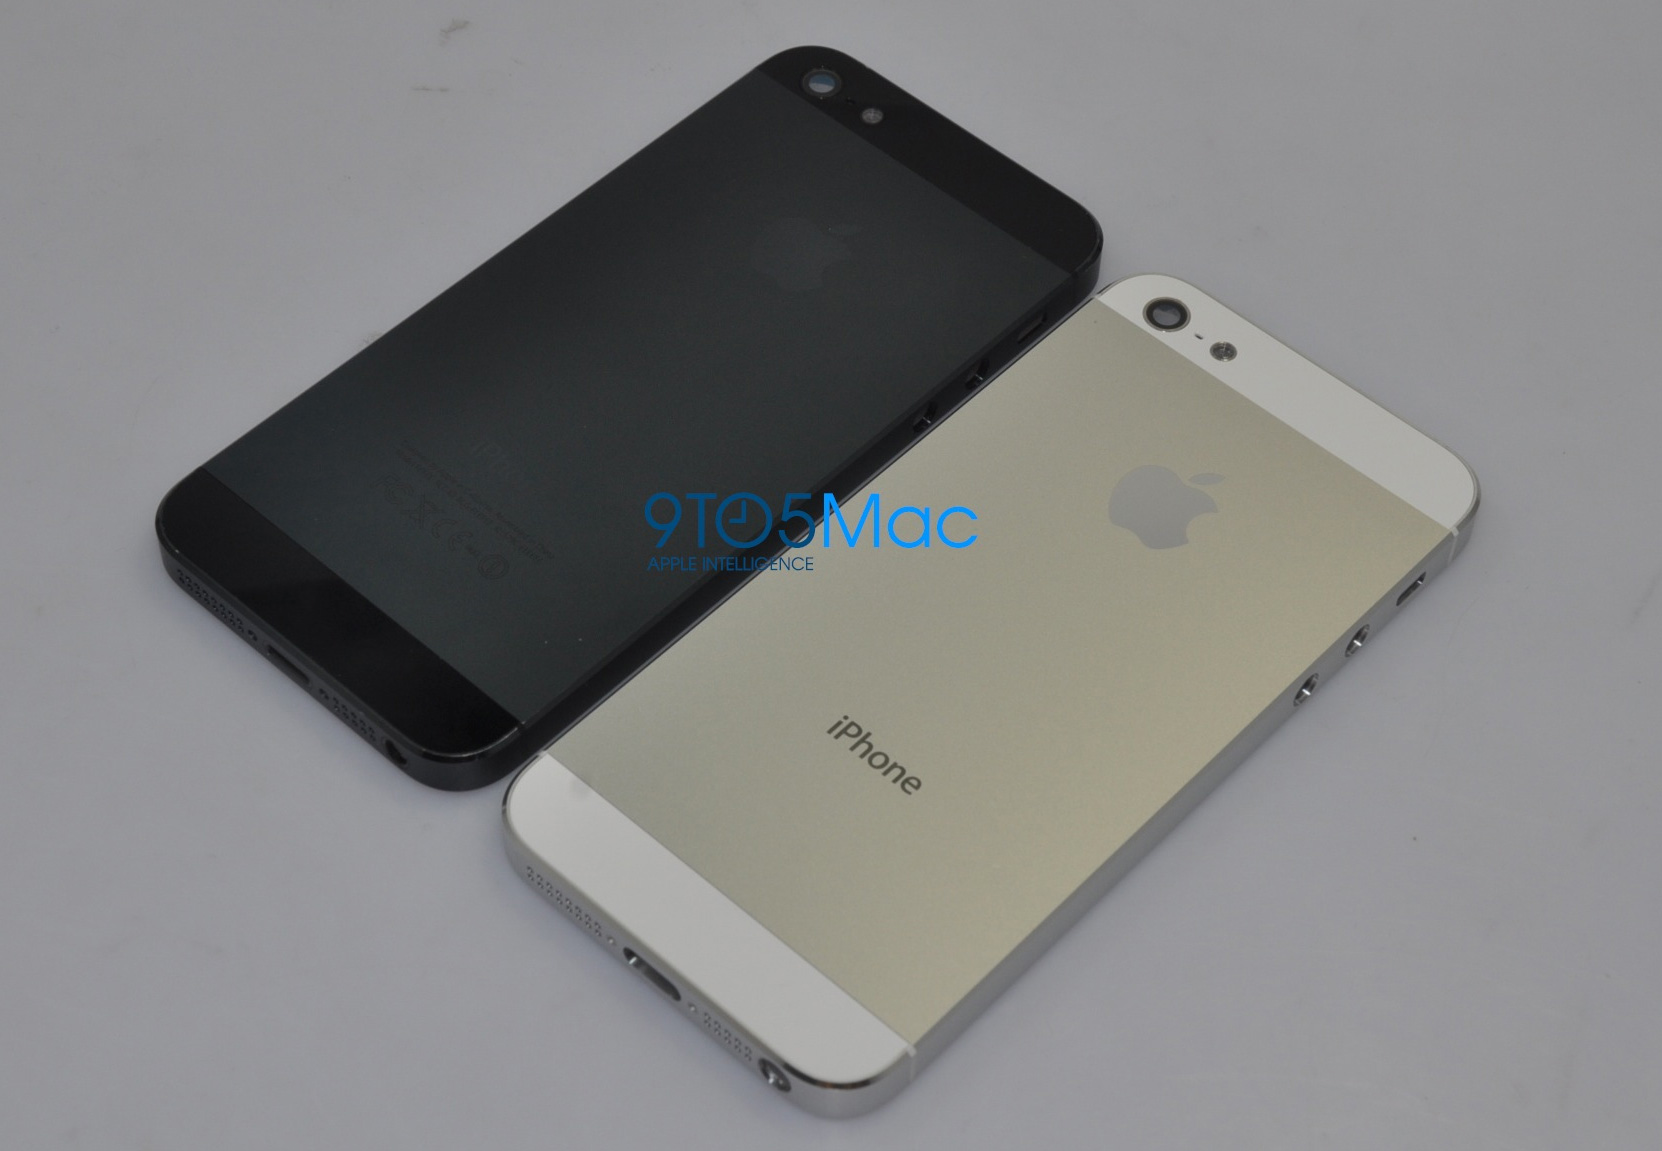 New iPhone 5 Pictures Leaked – Are They Real?